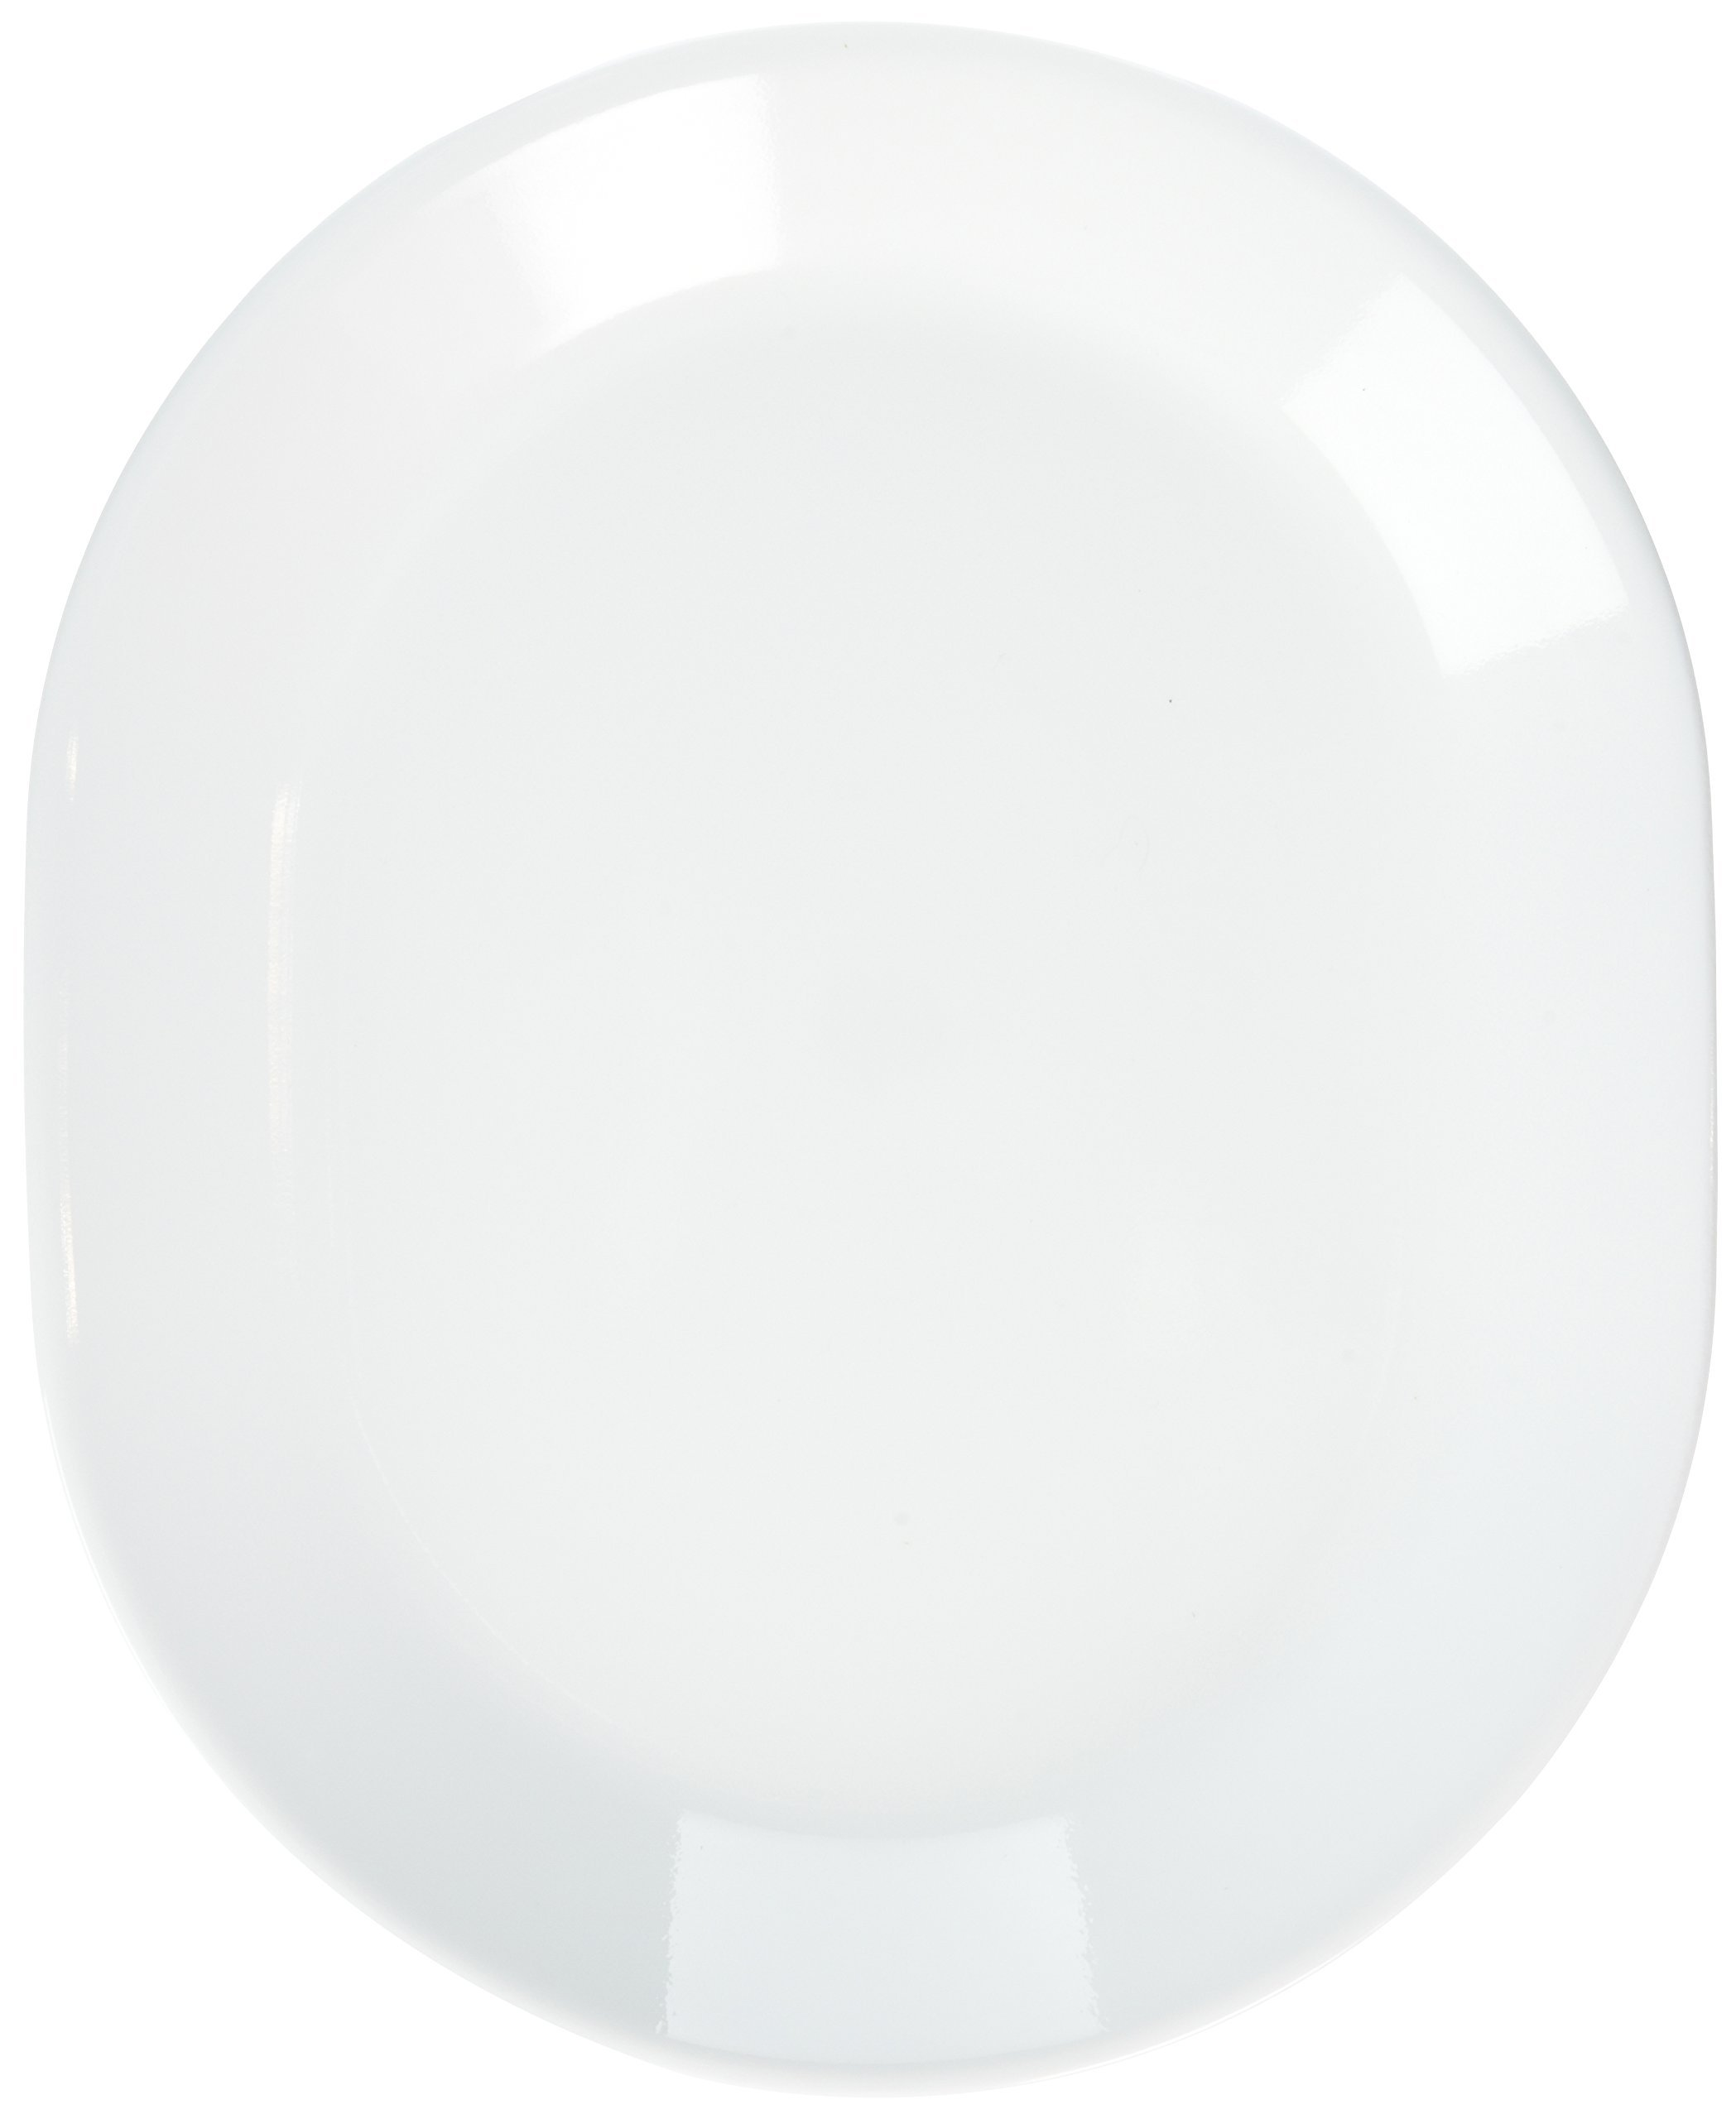 Corelle Livingware 12-1/4-Inch Serving Platter, Winter Frost White (Winter Frost White- 2-Pack) by Corelle